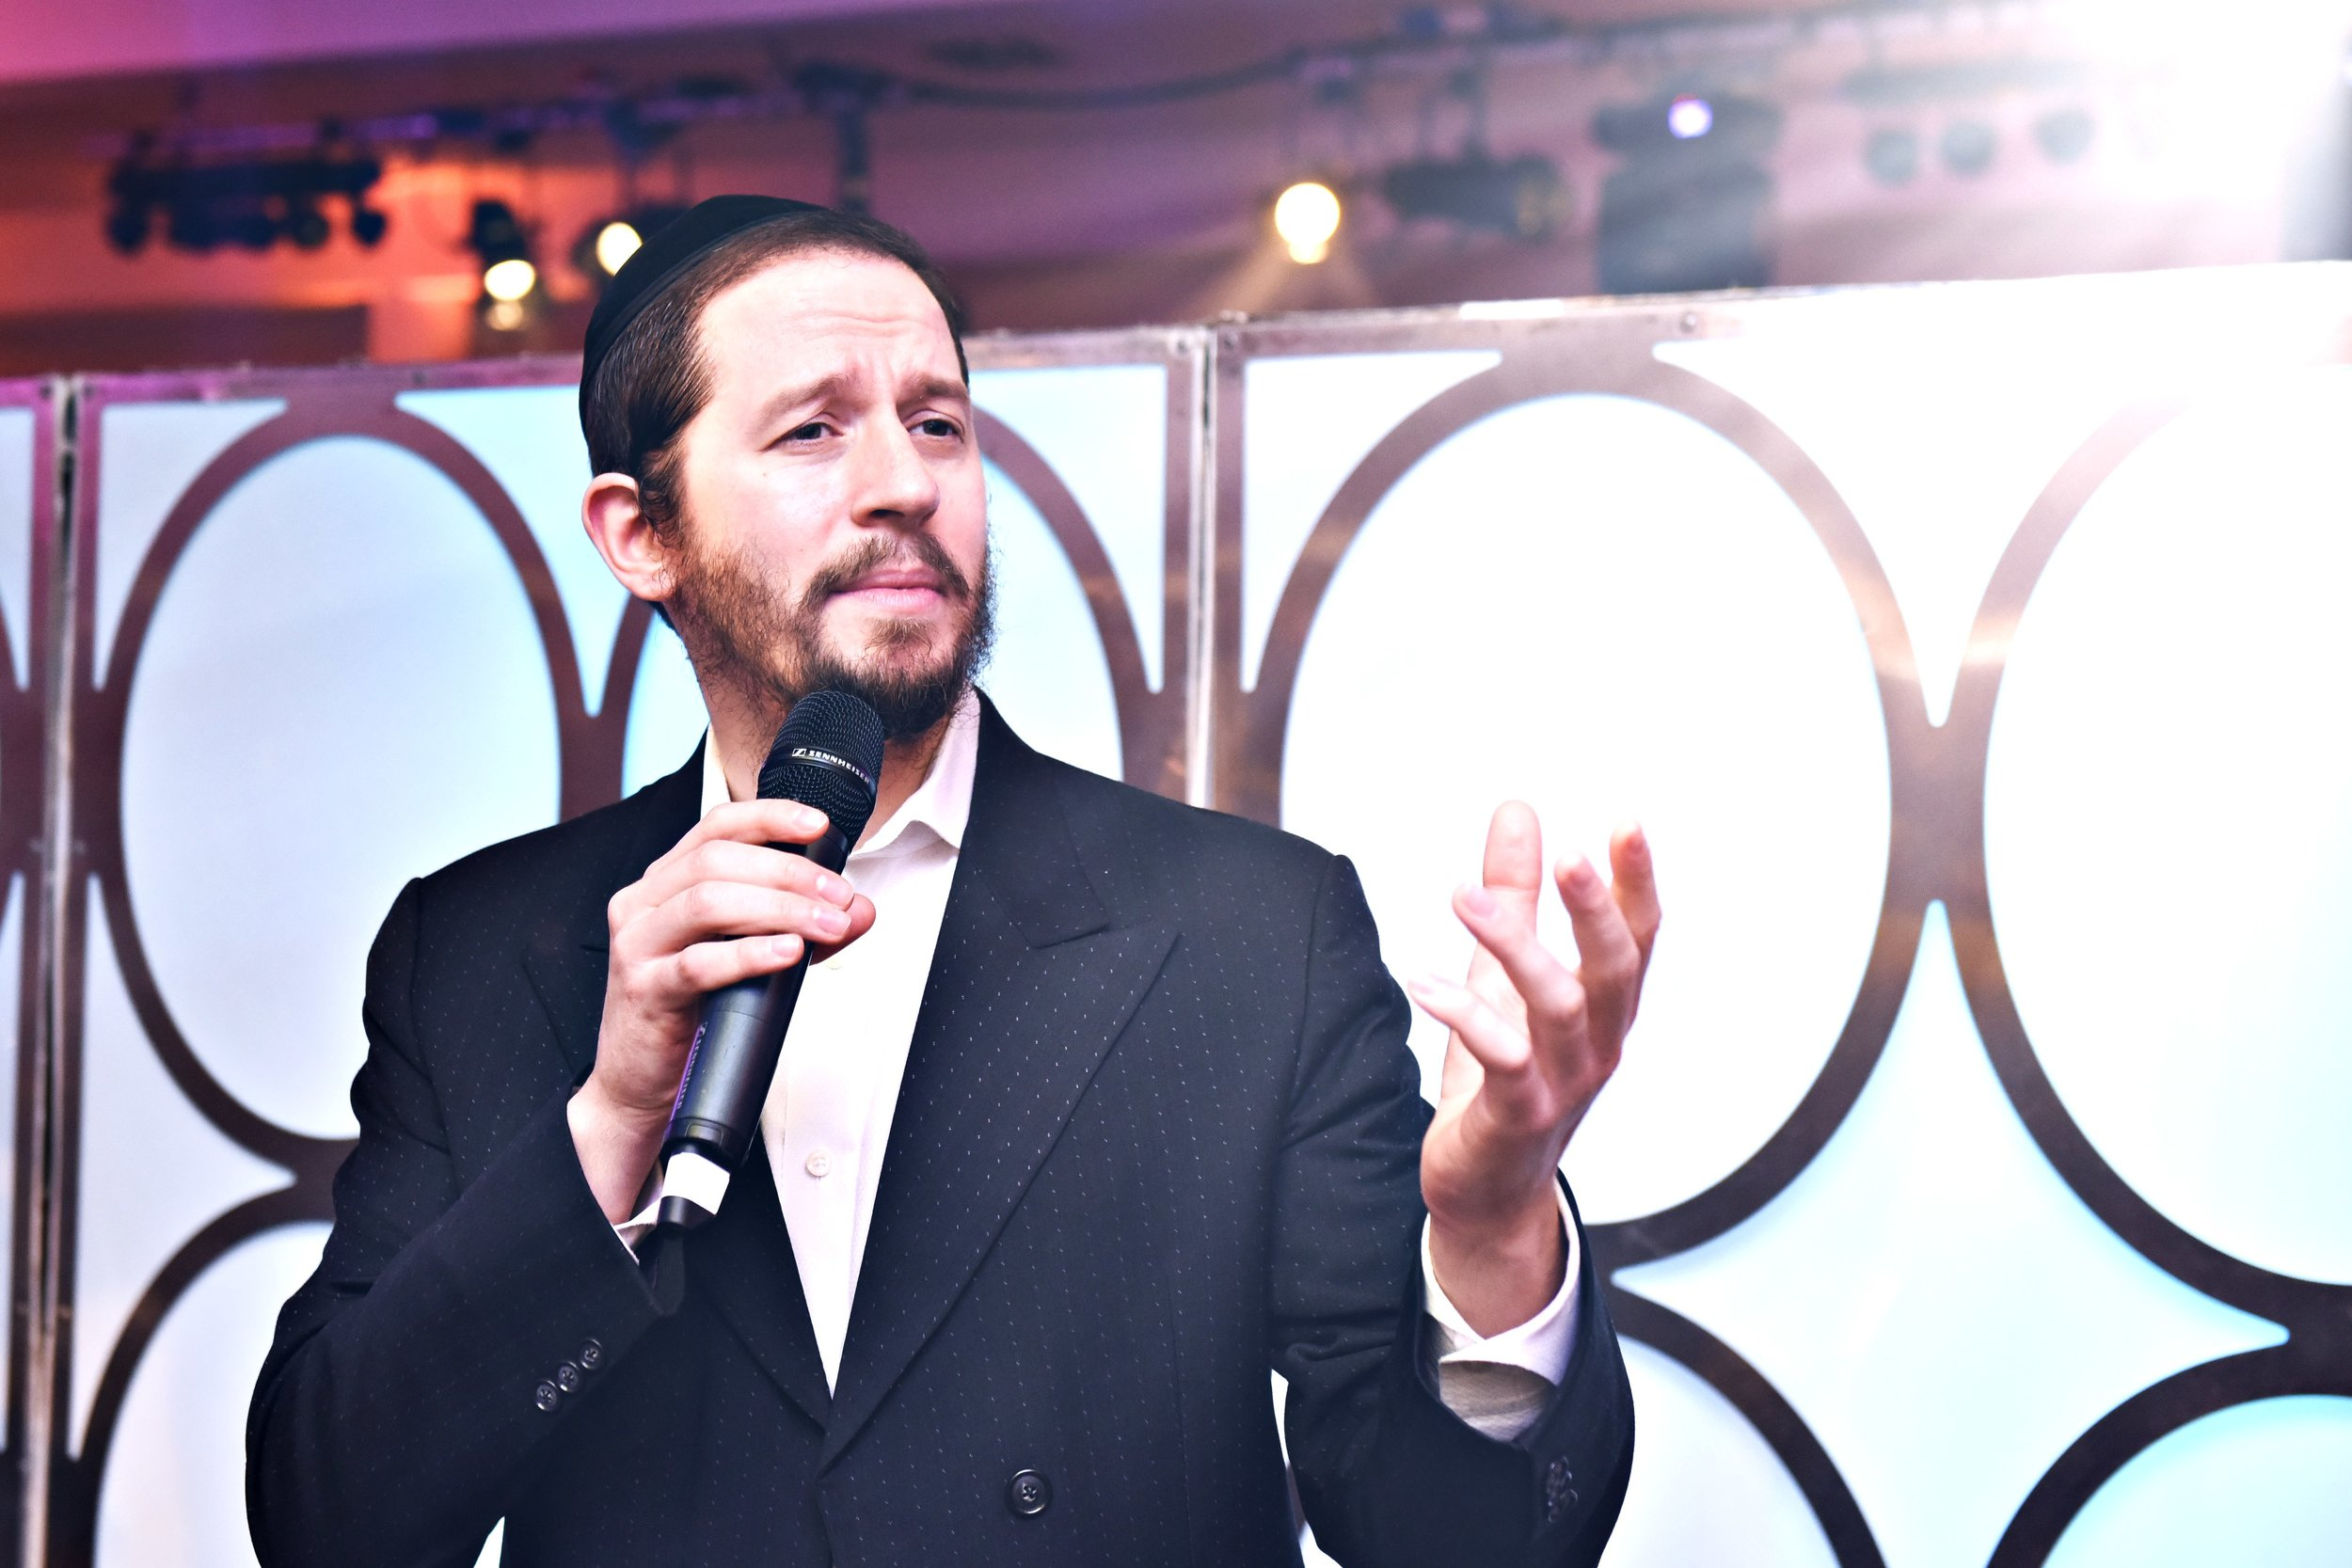 Shloime Gertner's beautiful vocals bring an uplifting spirit to every event.